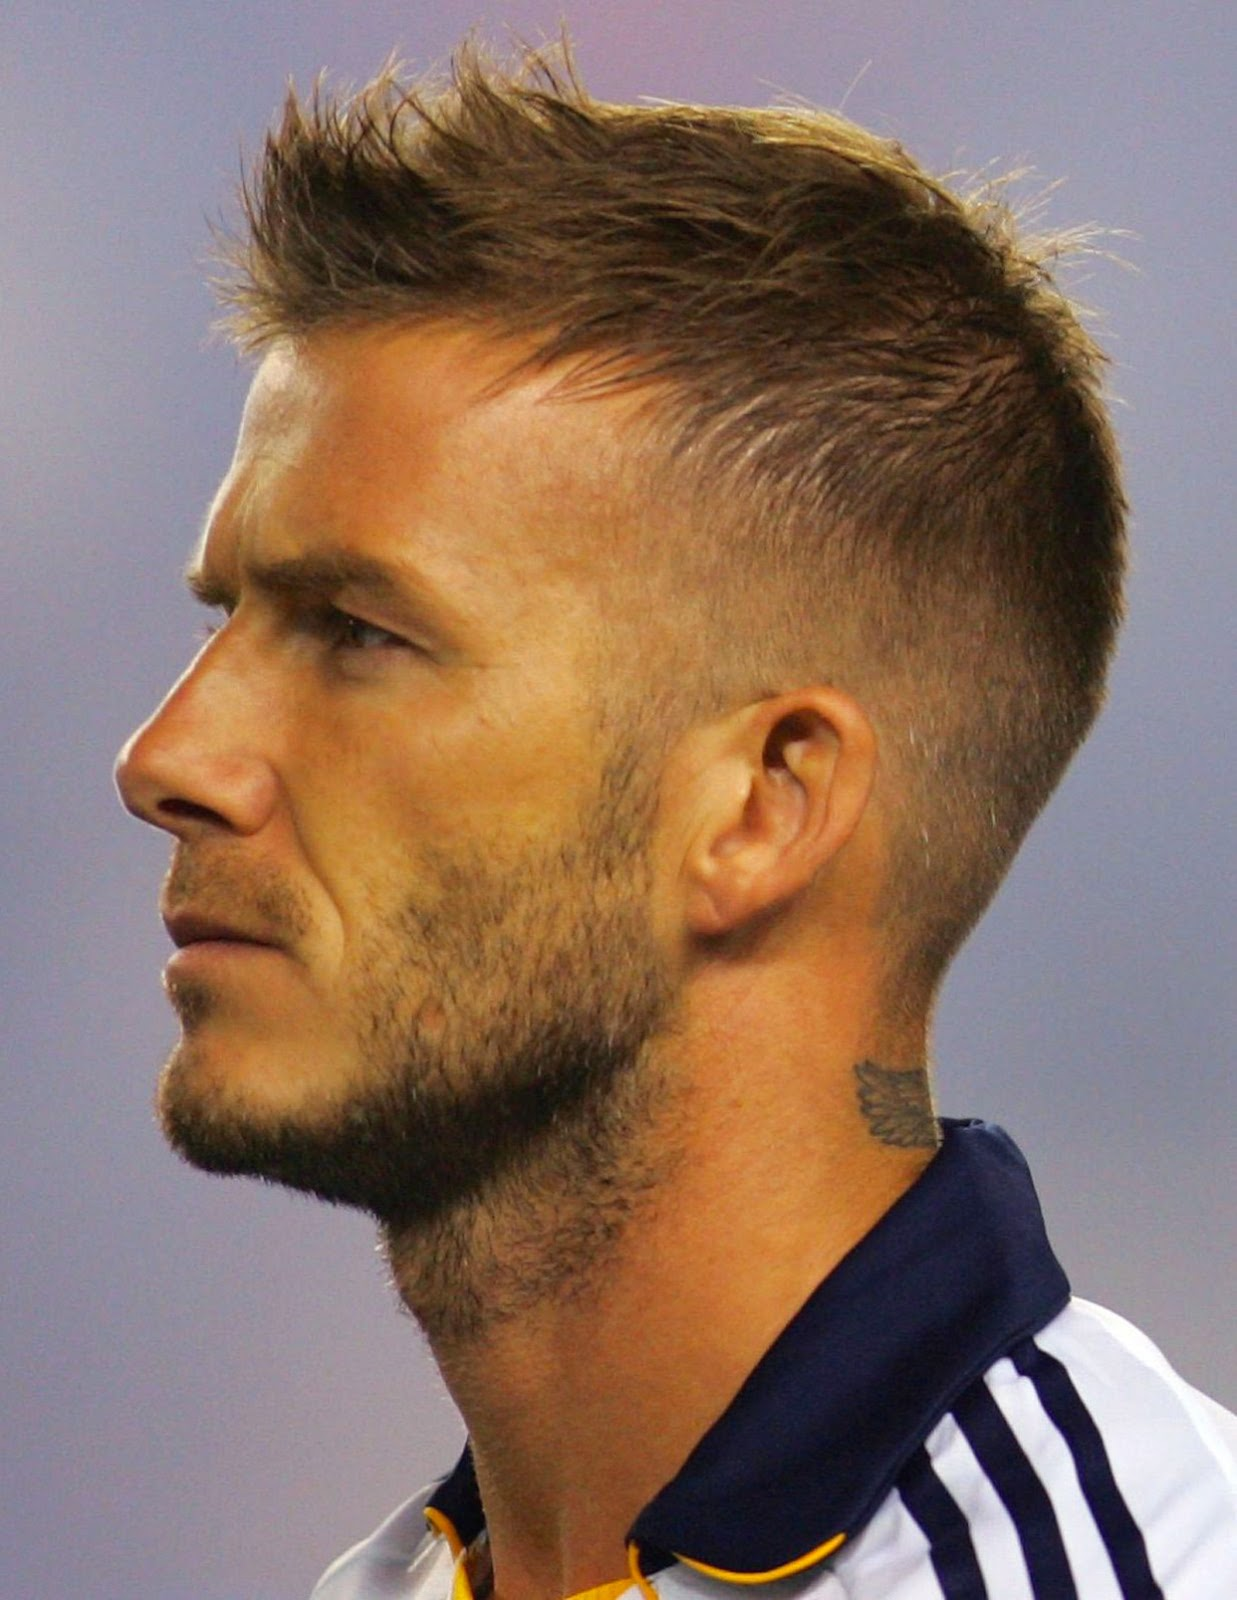 David Beckham Haircut: 12 Best David Beckham Celebrity Hairstyles